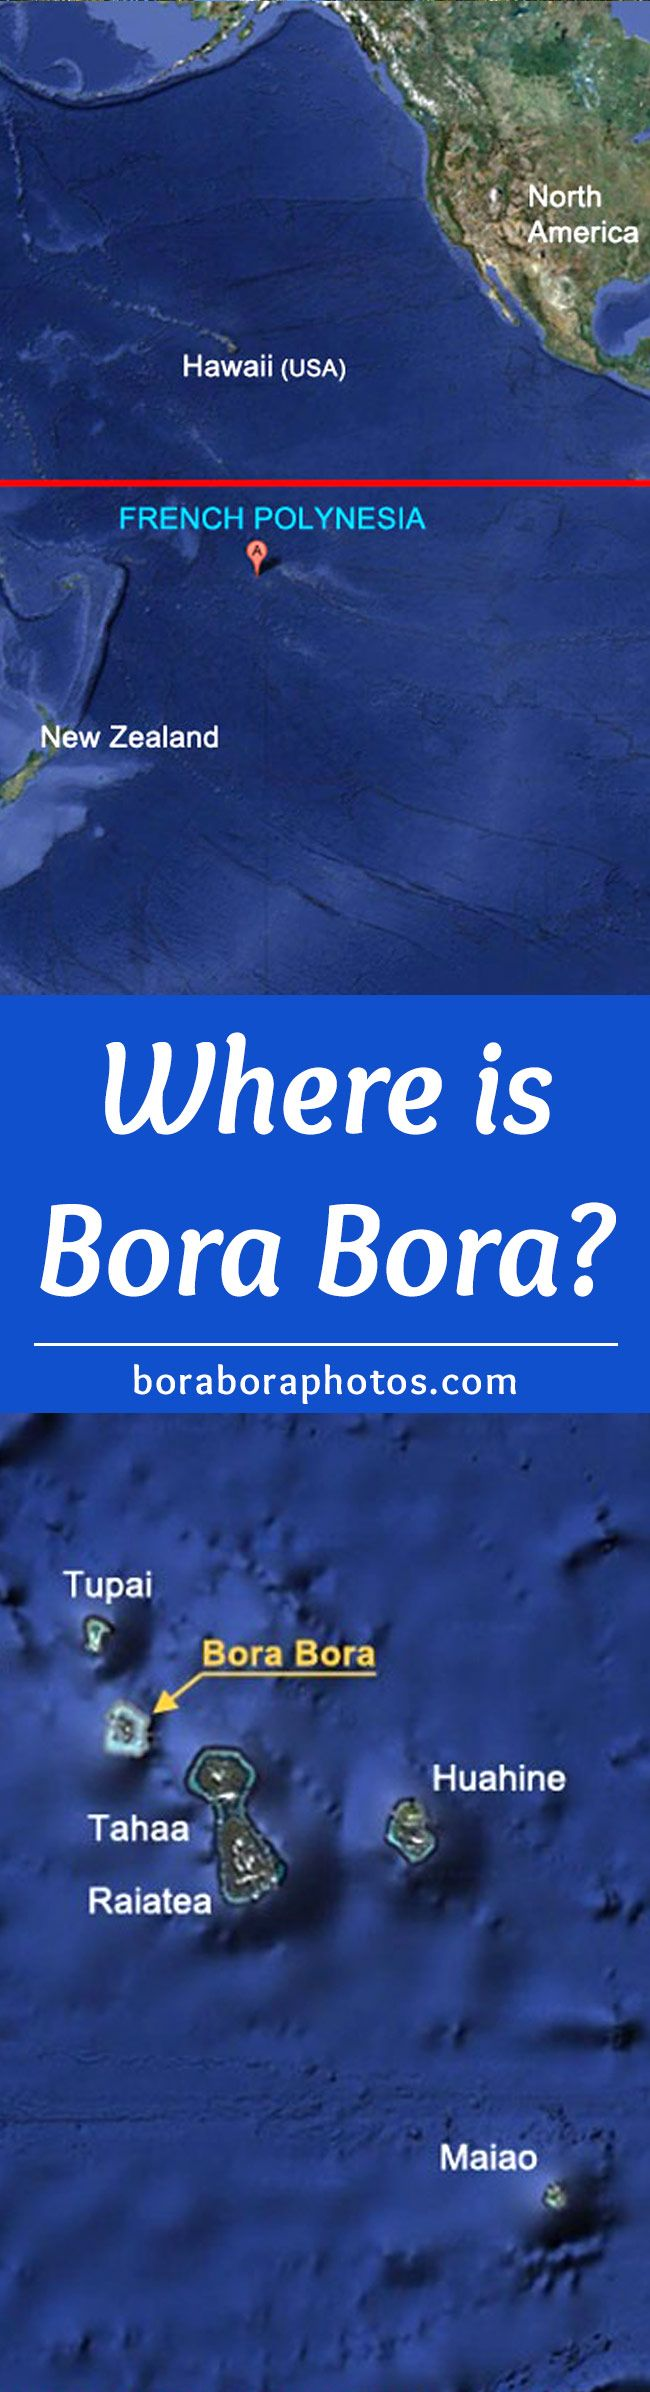 "Where is Bora Bora? - They call this island ""The Pearl Of The Pacific"" and it's located in French Polynesia. It's also part of an island chain called the Society Islands. Bora Bora is located about 160 miles northwest of Tahiti and approximately 2,600 miles south of Hawaii. The island was discovered in 1722 by James Cook."